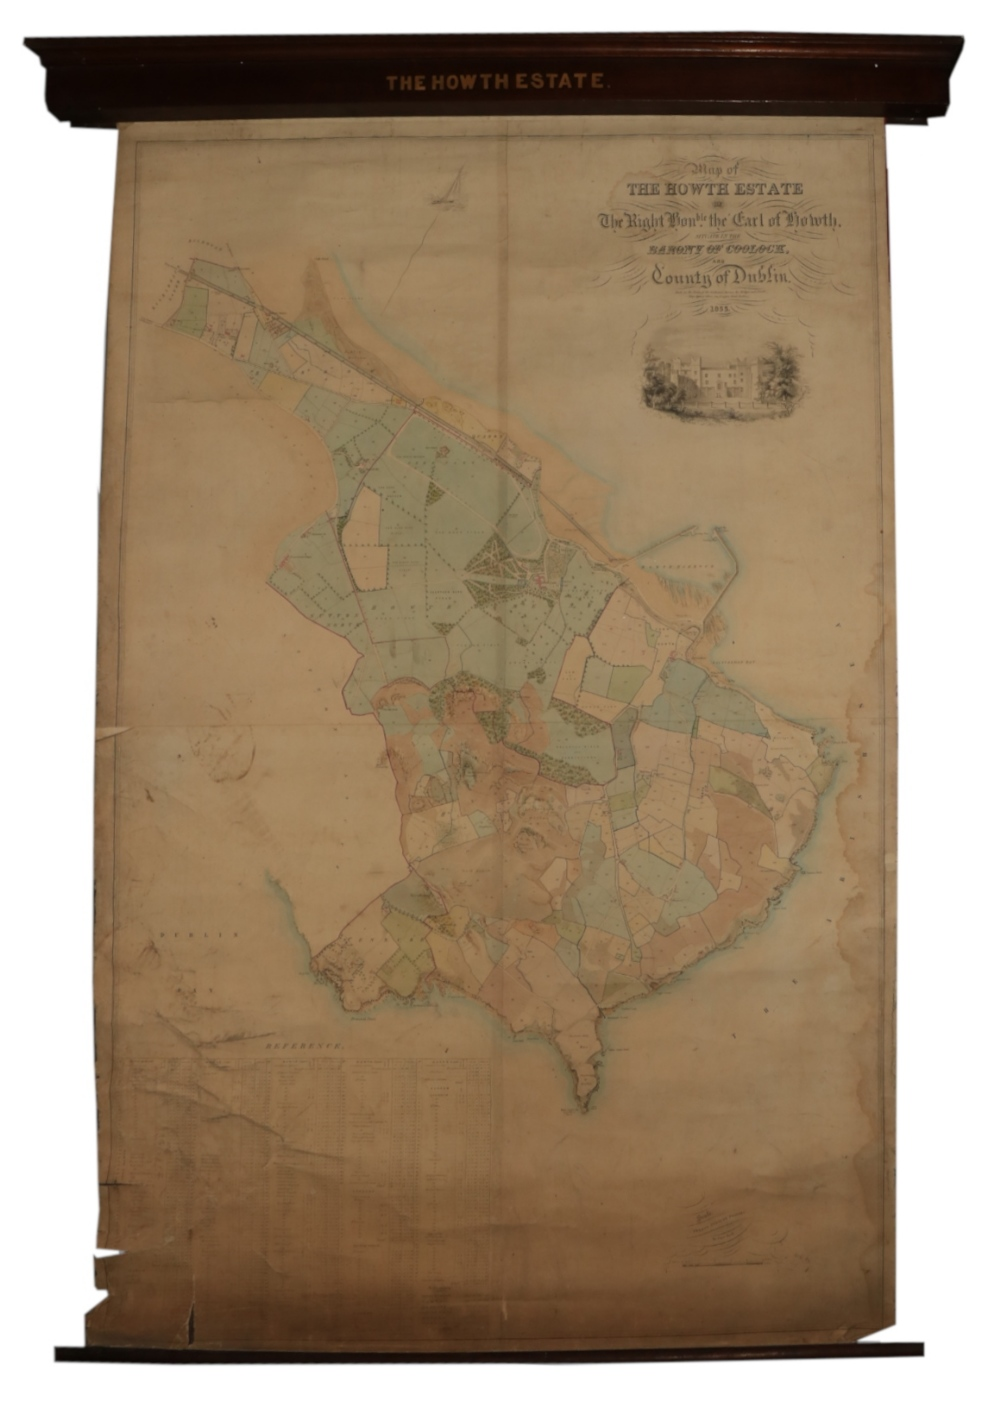 Irish Map: Map of the Howth Estate of the Right Honorable the Earl of Howth, situate in the